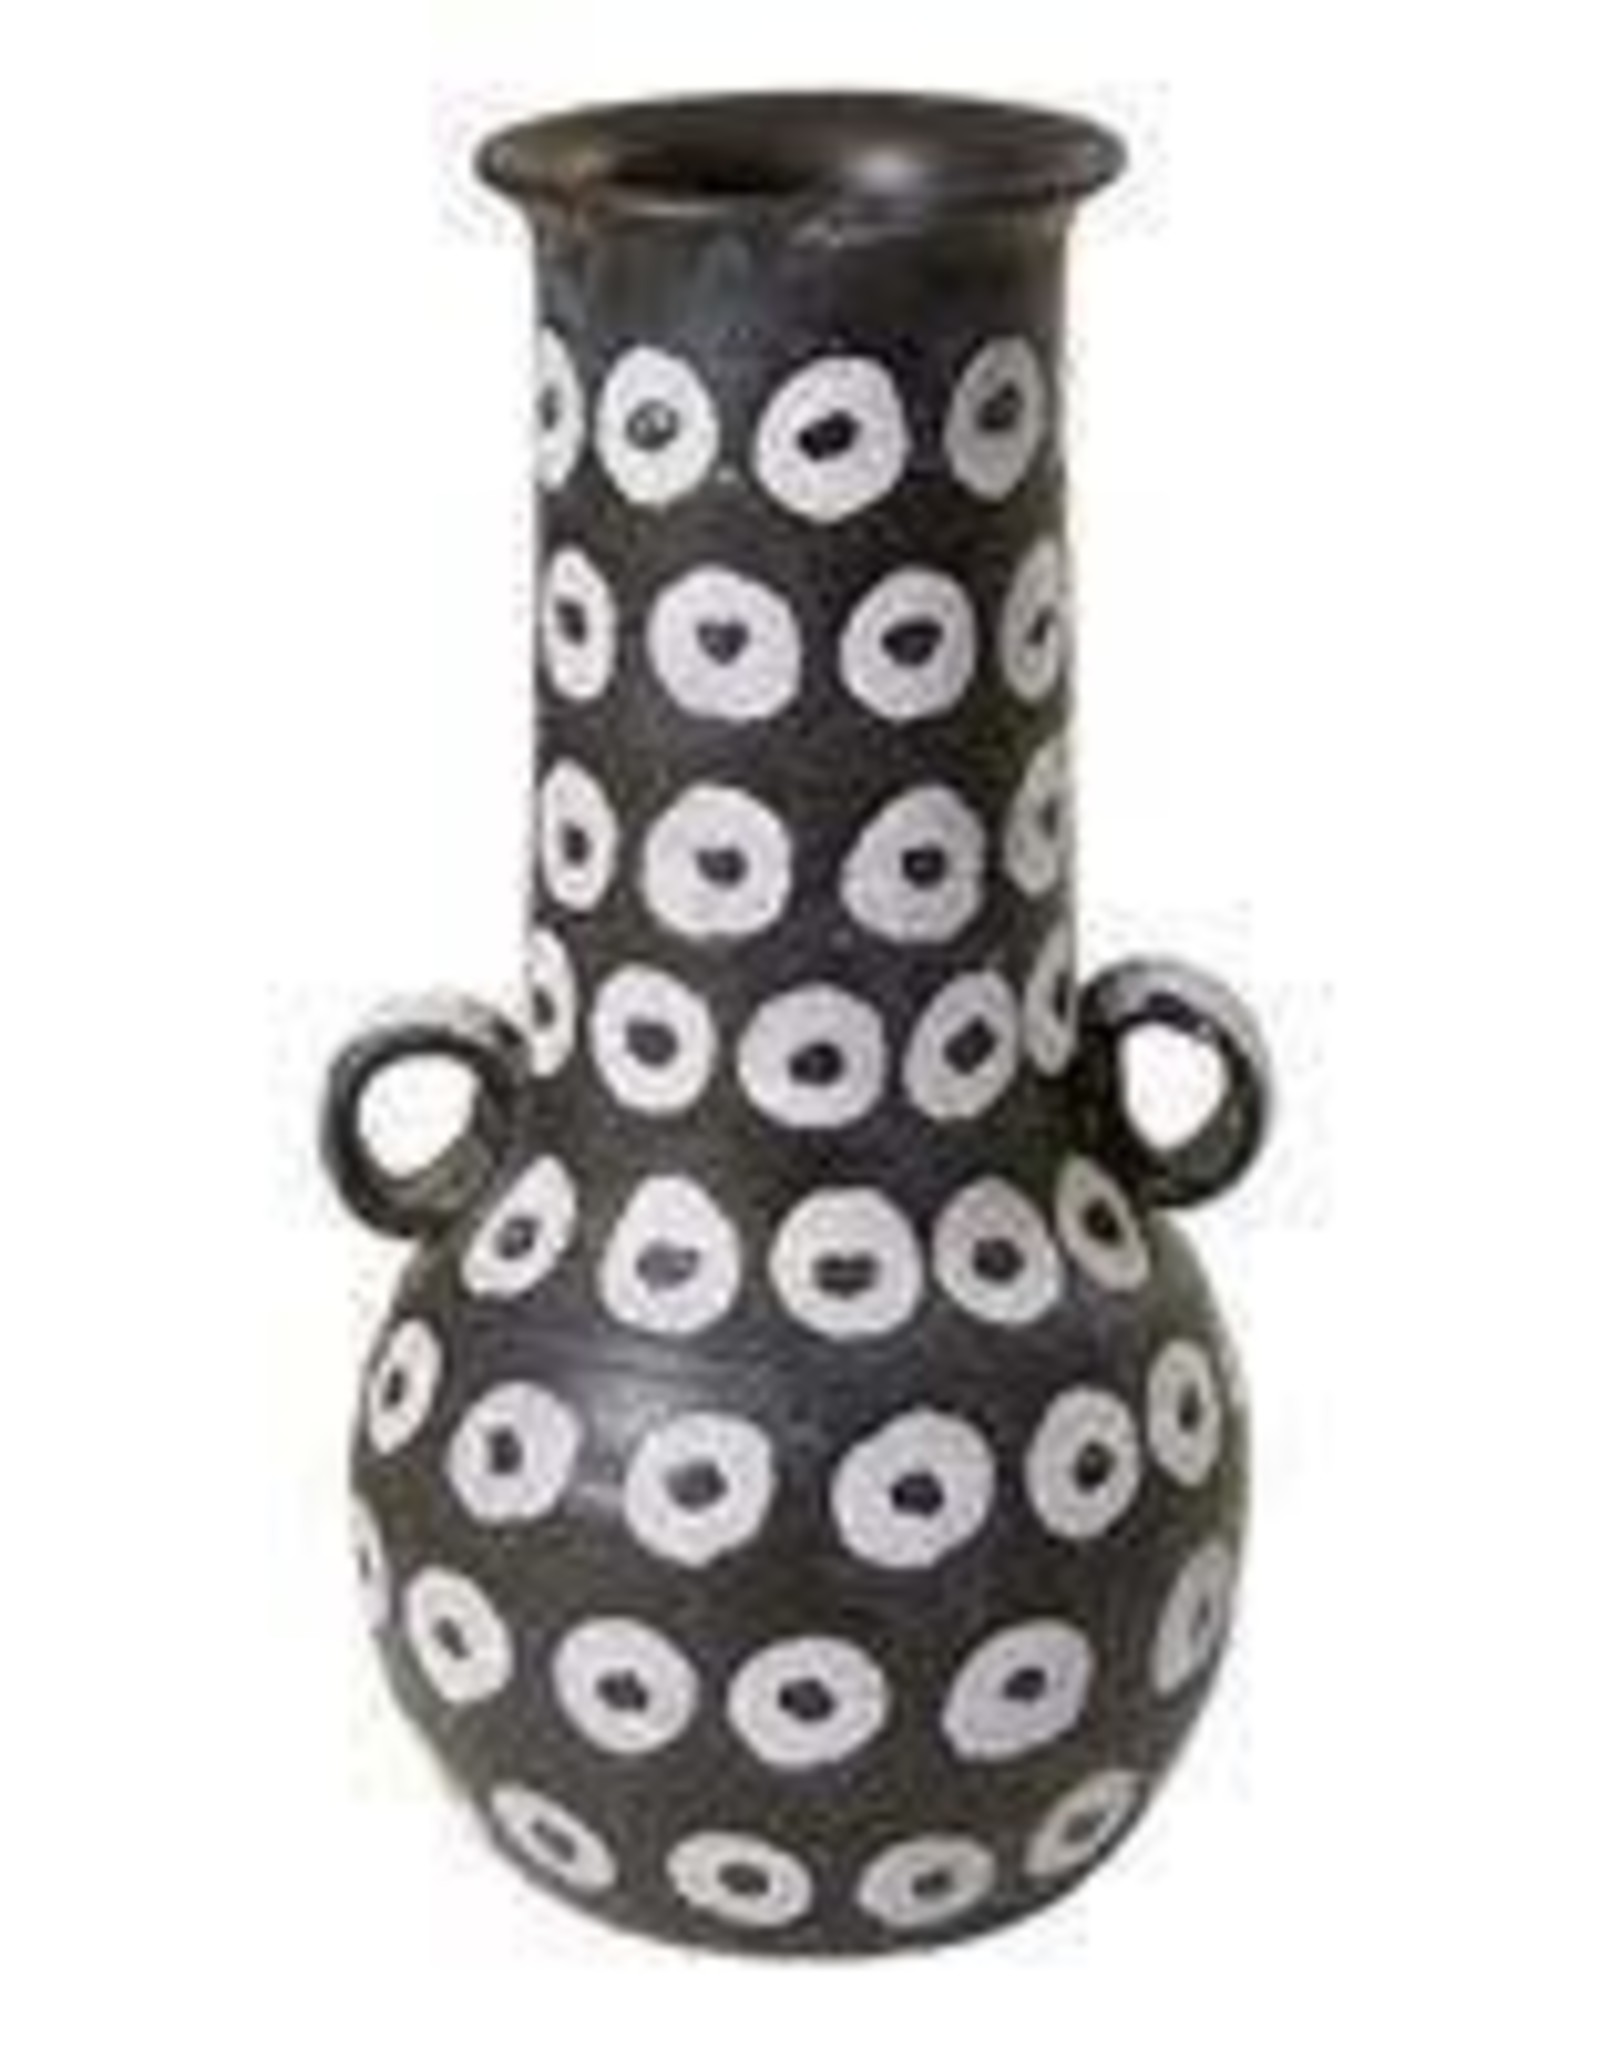 Tall Black Vase with white rings